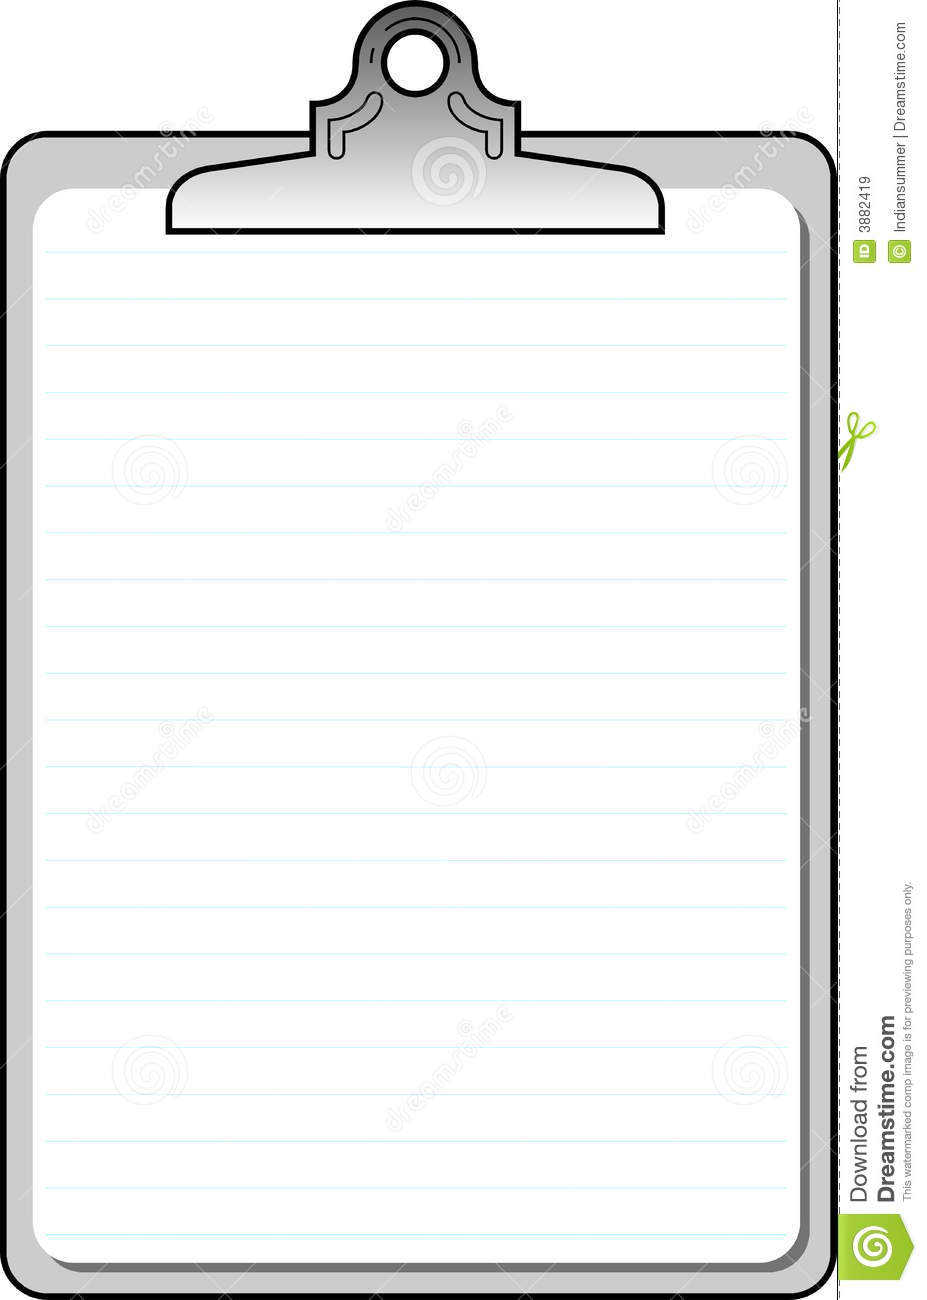 blank lined notebook background stock vector   image 3882419